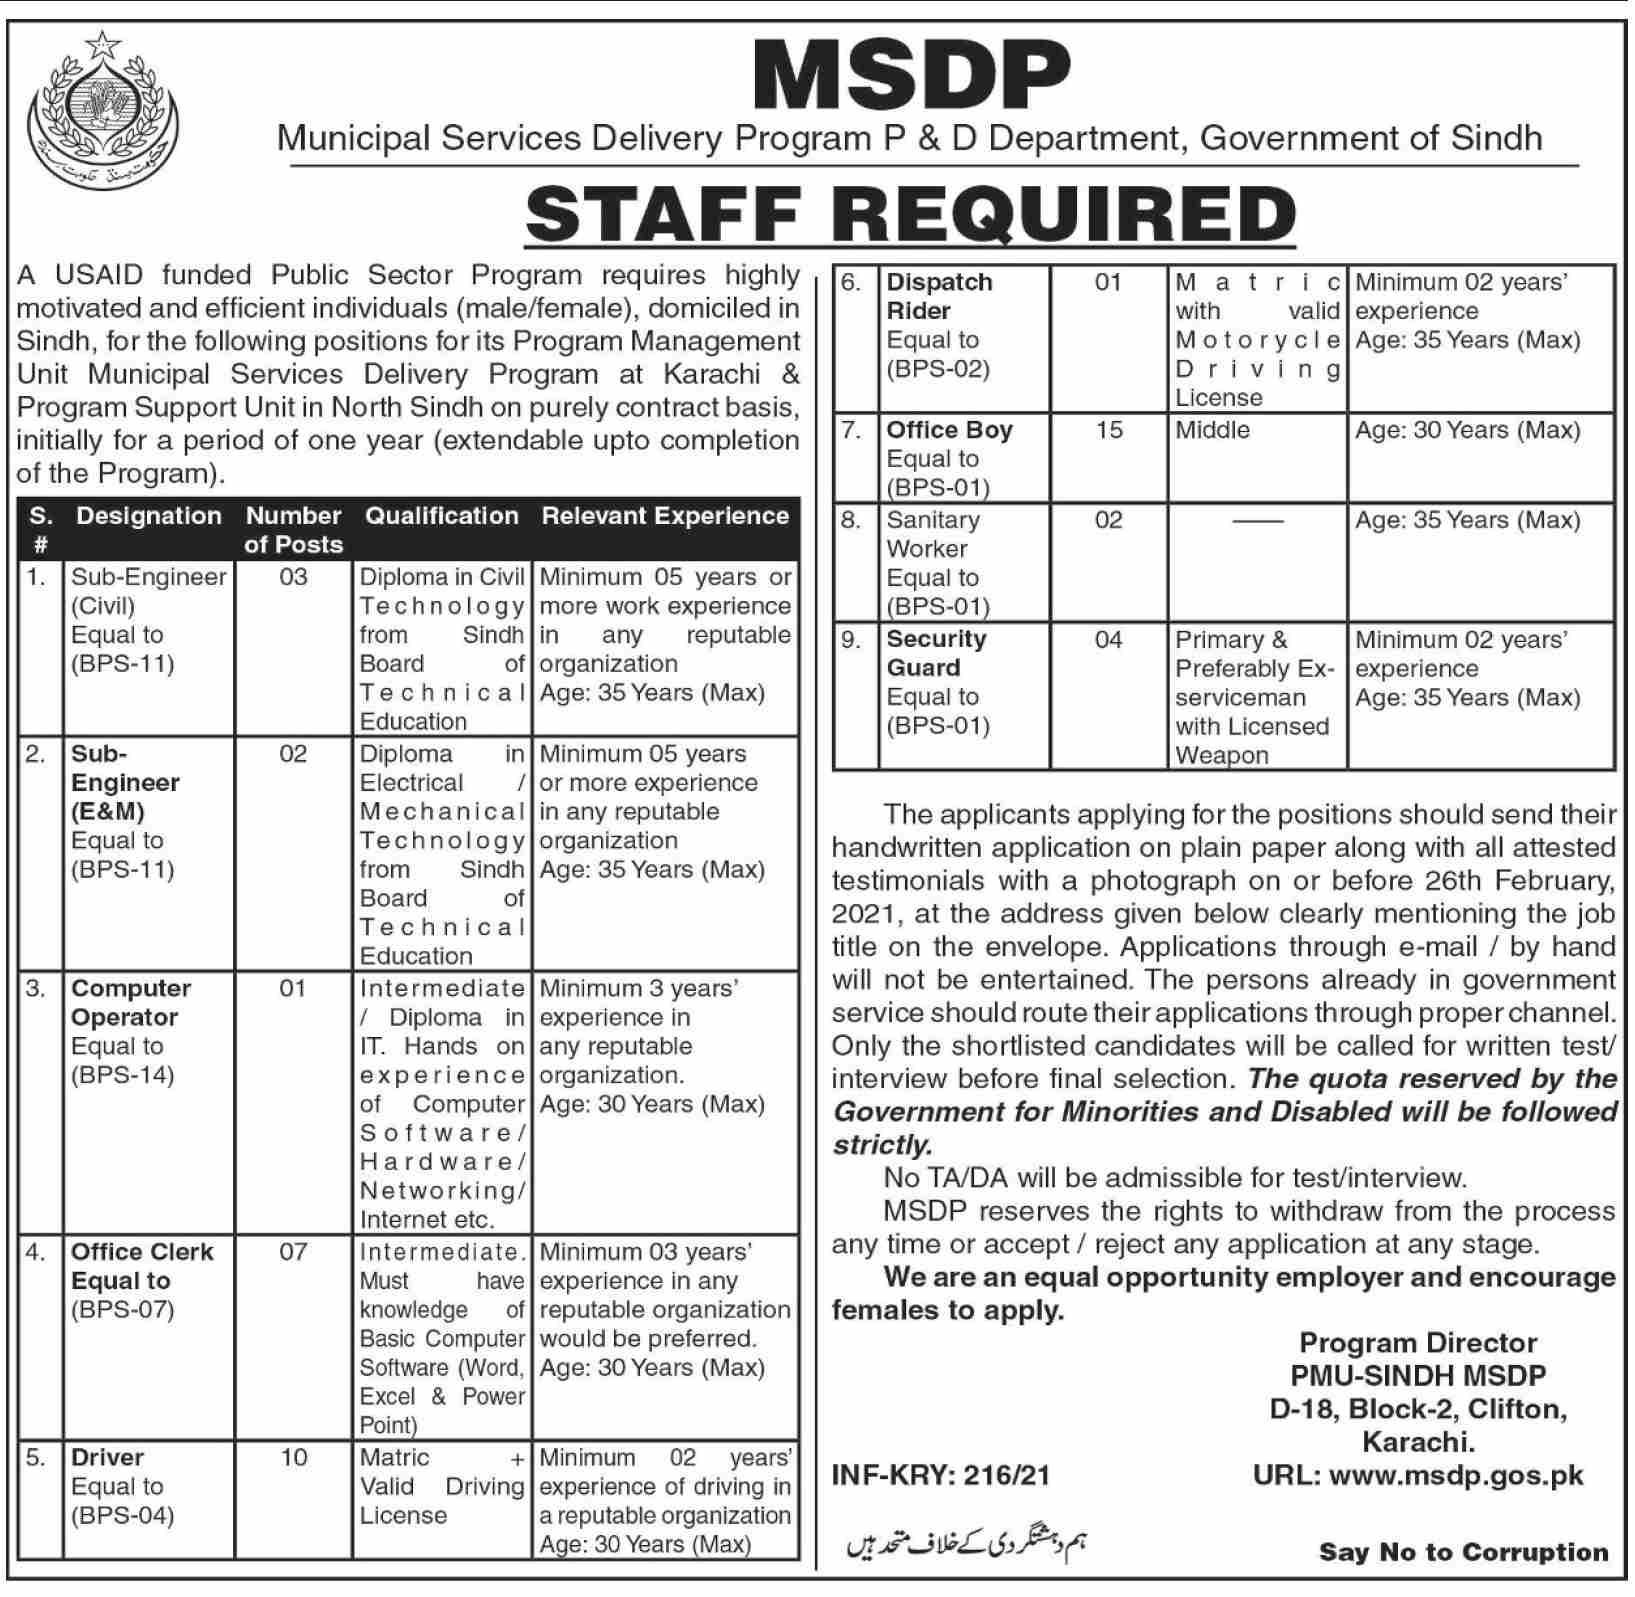 MSDP Municipal Services Delivery Program P & D Department Government of Sindh Jobs January 2021